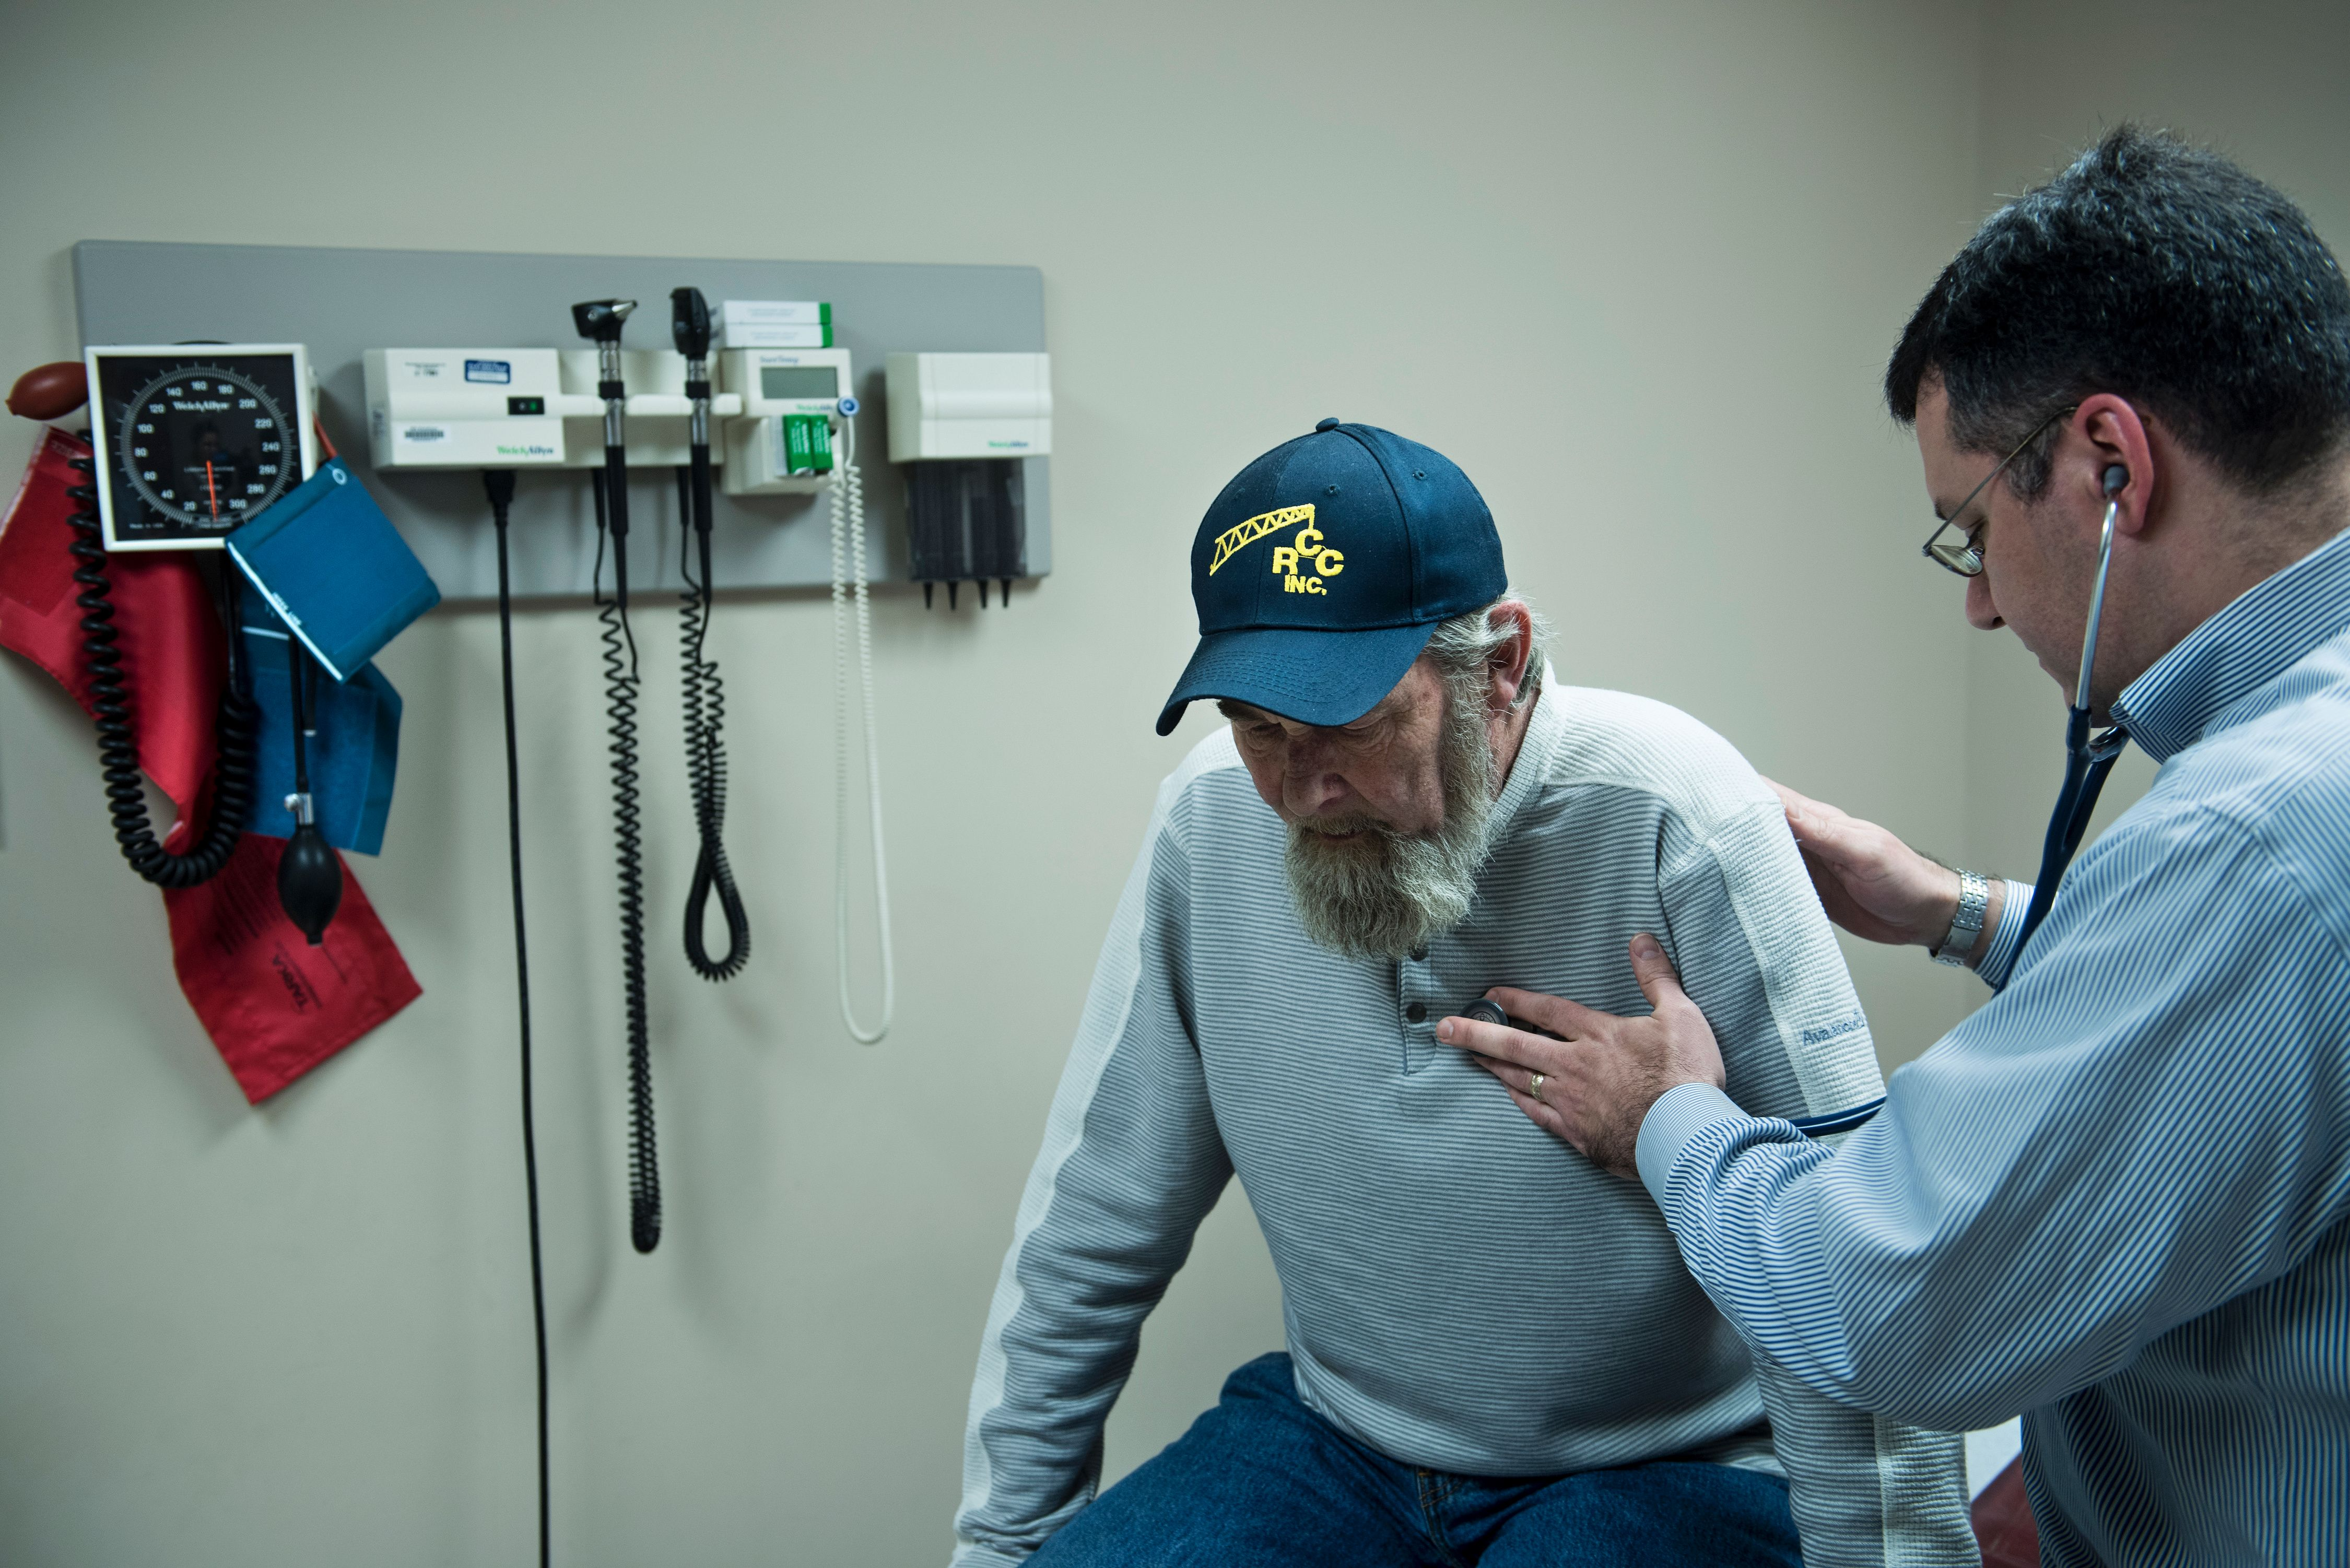 A lung cancer patient receives treatment at a West Virginia hospital